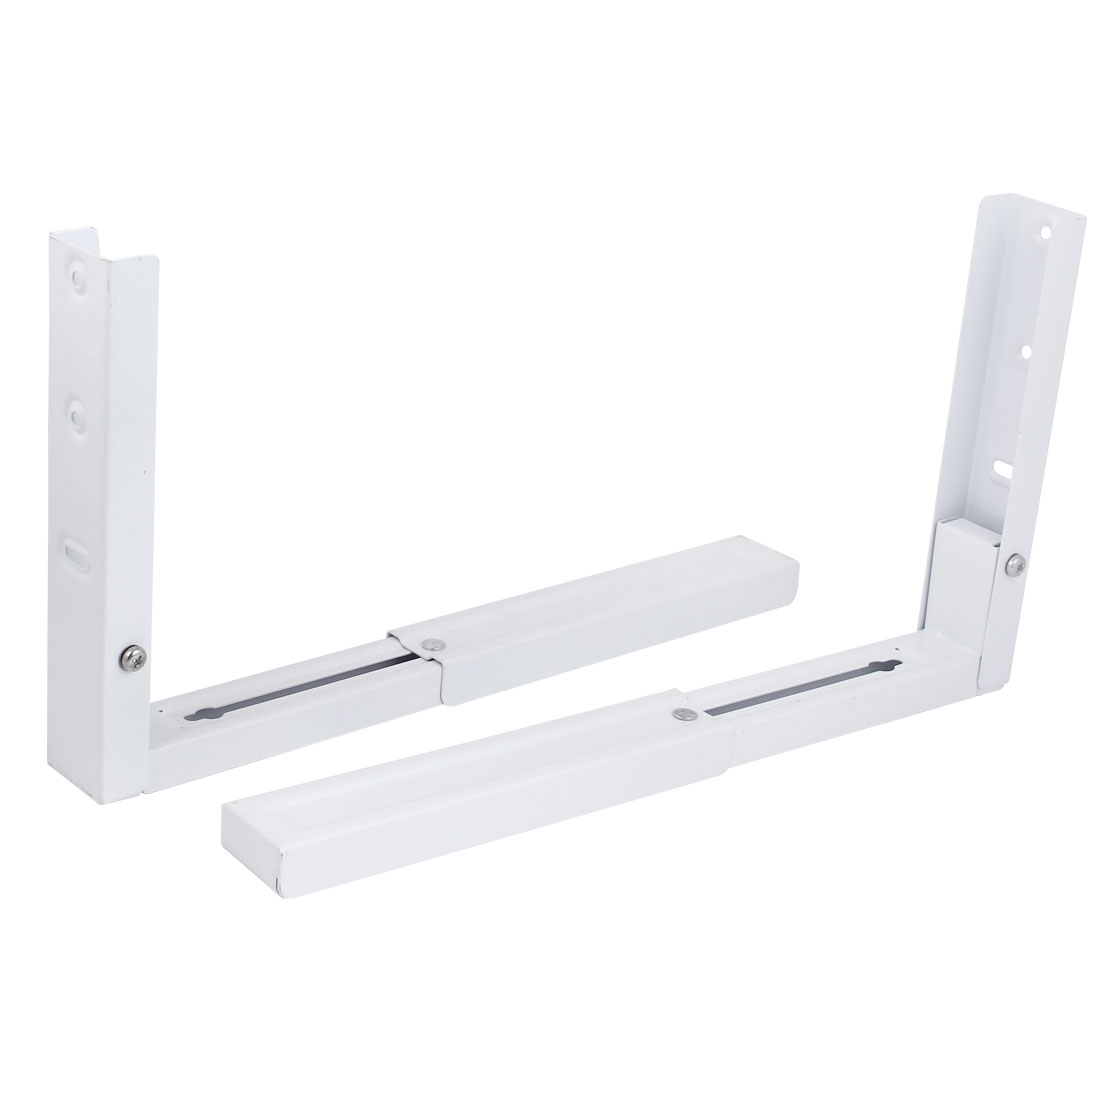 Microwave Oven Metal Shelf Foldable Stretch Rack Wall Mounted Bracket 2pcs